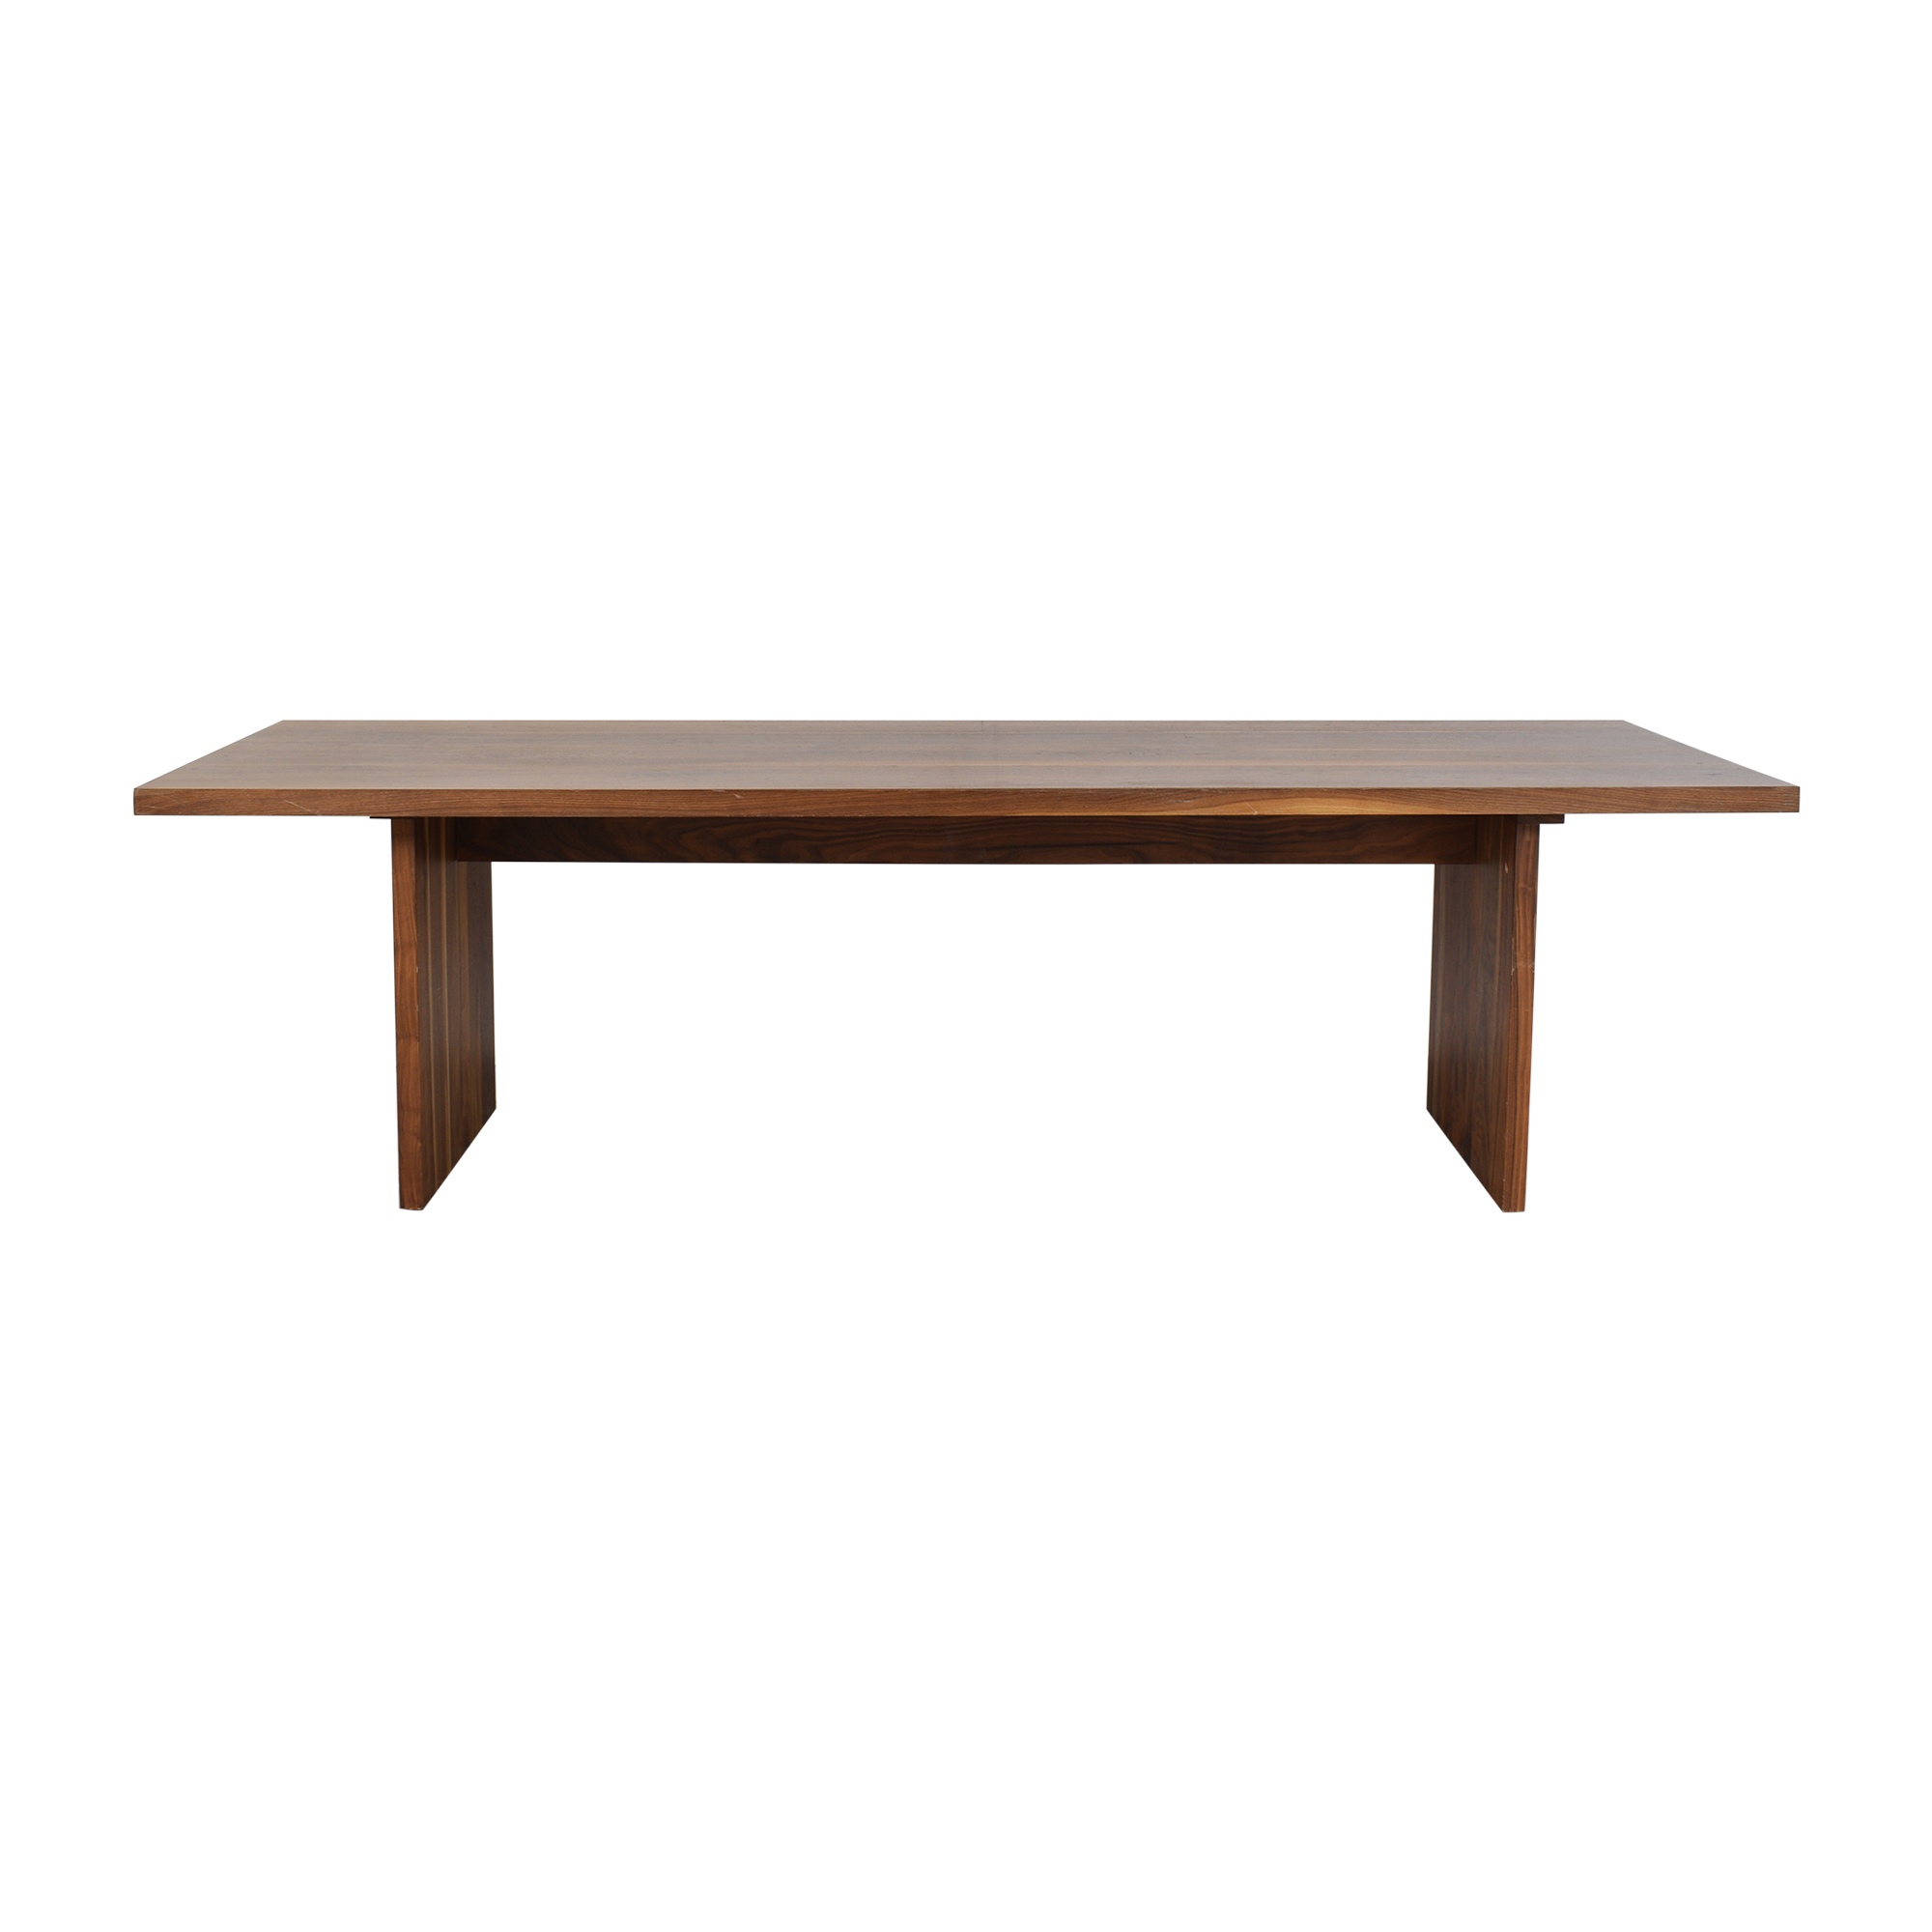 shop Room & Board Room & Board Corbett Dining Table online